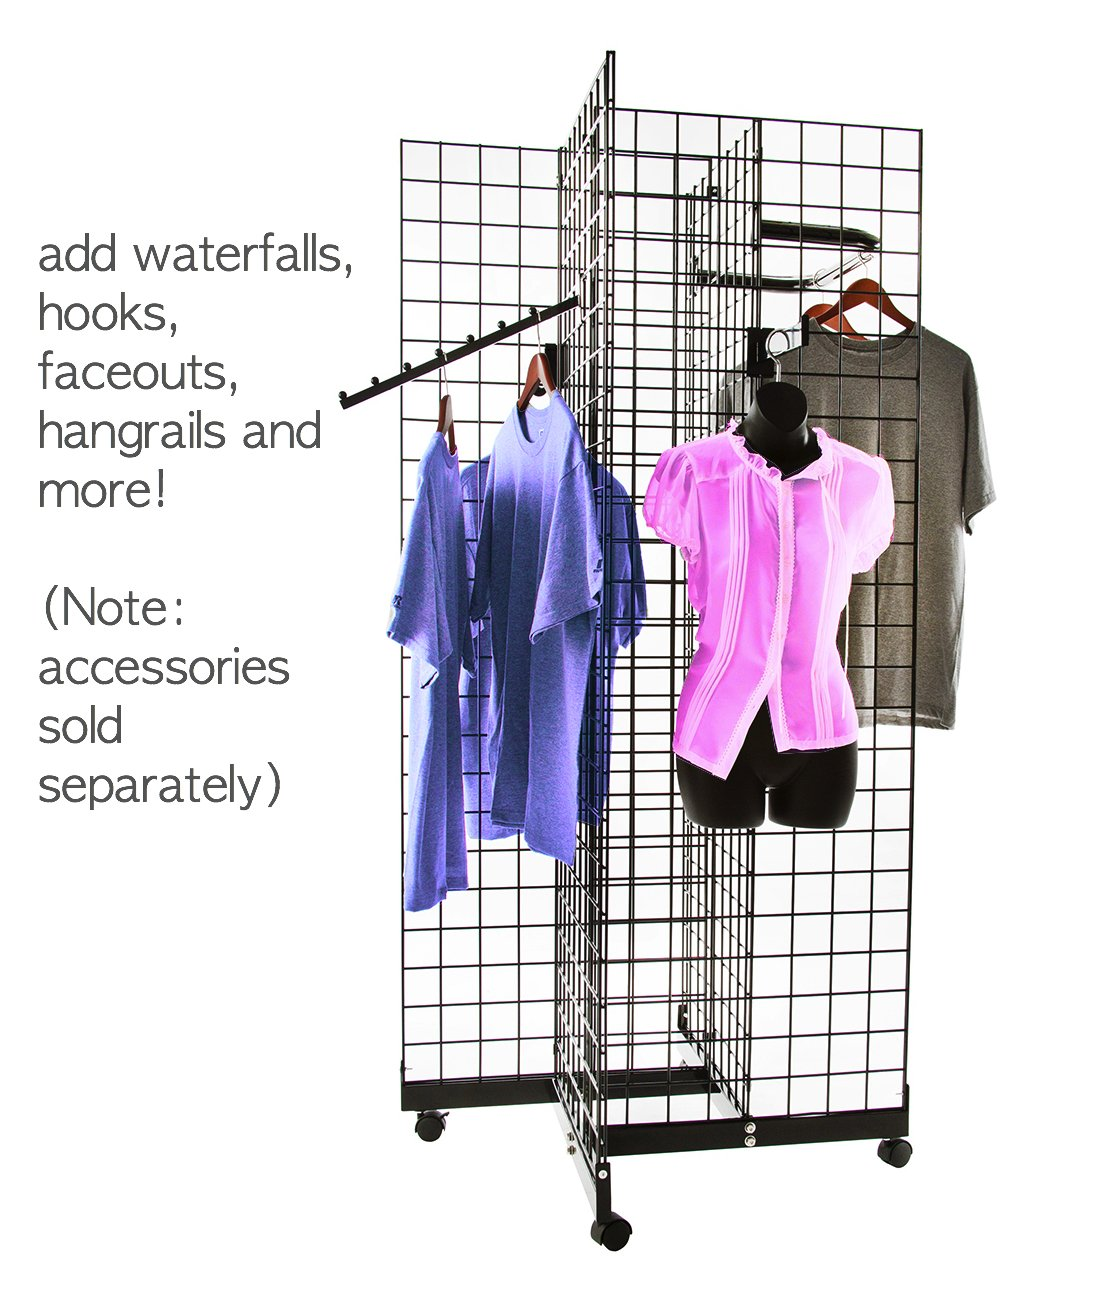 Only Hangers Black 4-Way Wire Grid Tower with Base and Casters - 2' x 6' Wire Grid Panel 4-Sided Rolling Display Rack by Only Hangers (Image #2)